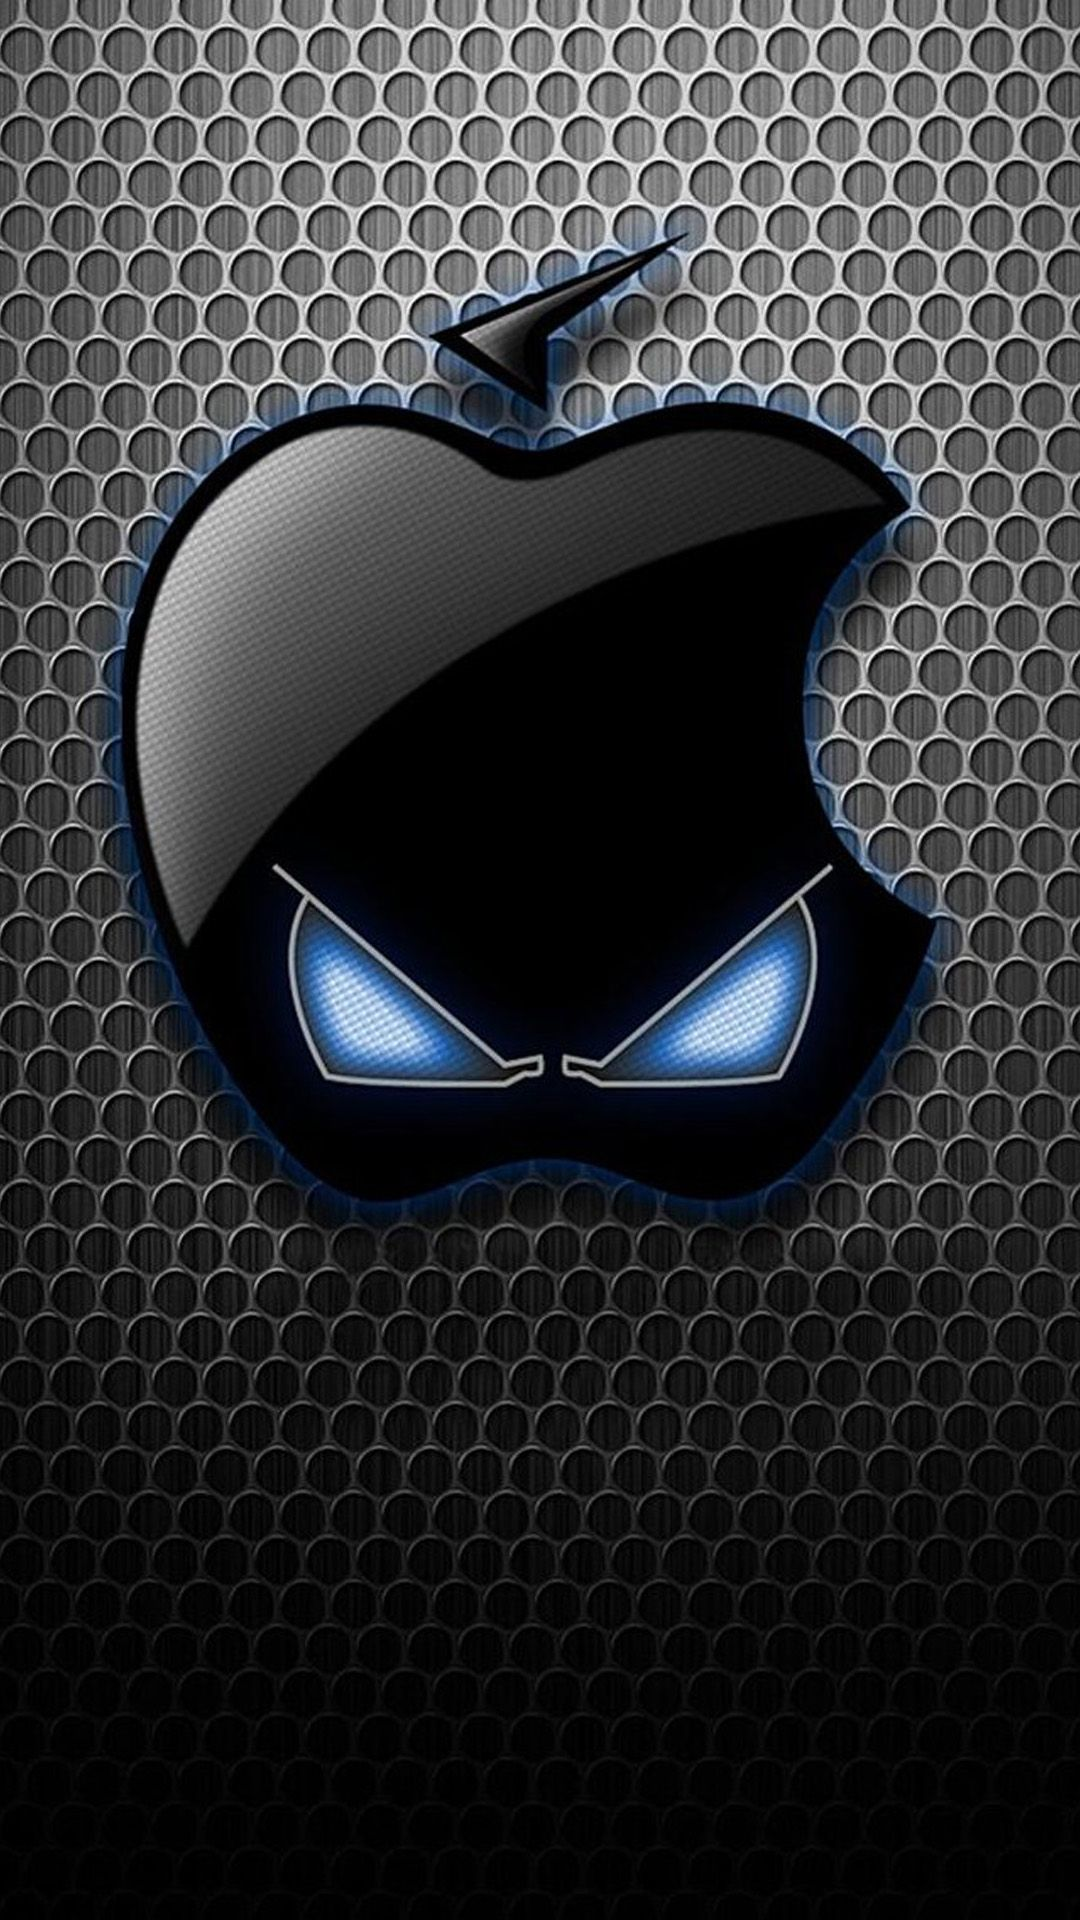 I Phone 6 and Samsung 5 Wallpapers 64 Apple wallpaper